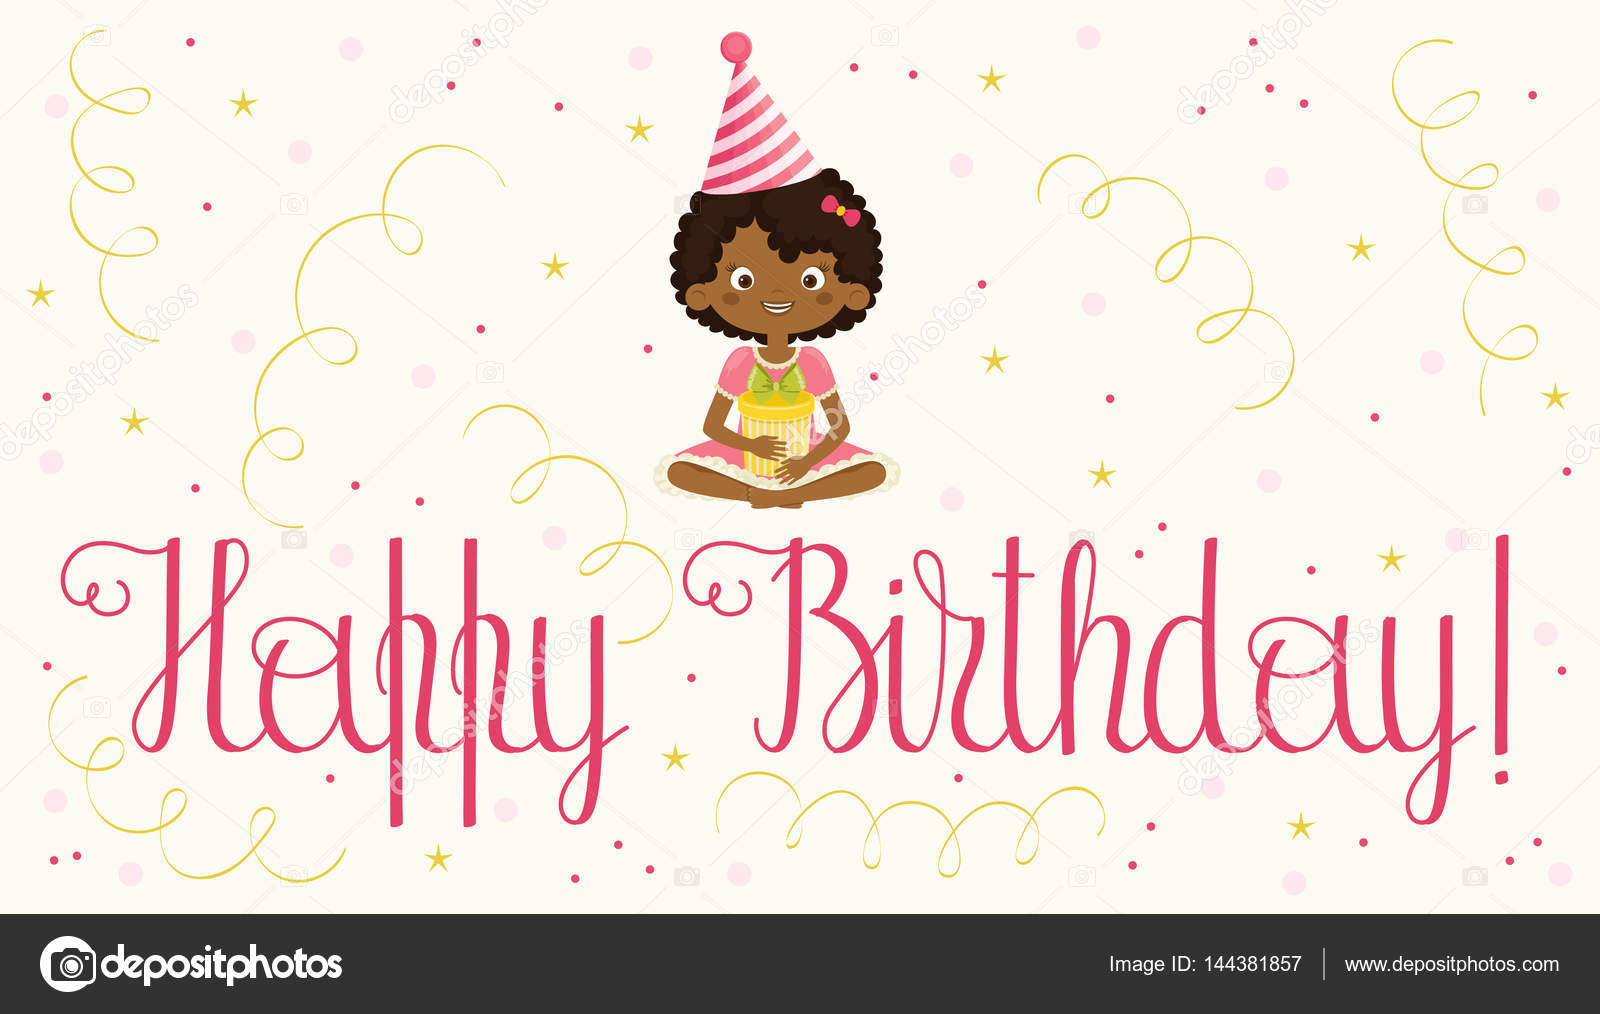 Happy birthday card with black girl stock vector natalie art black birthday girl with a gift box in birthday hat and confetti around handwritten lettering happy birthday vector art vector by natalie art bookmarktalkfo Gallery